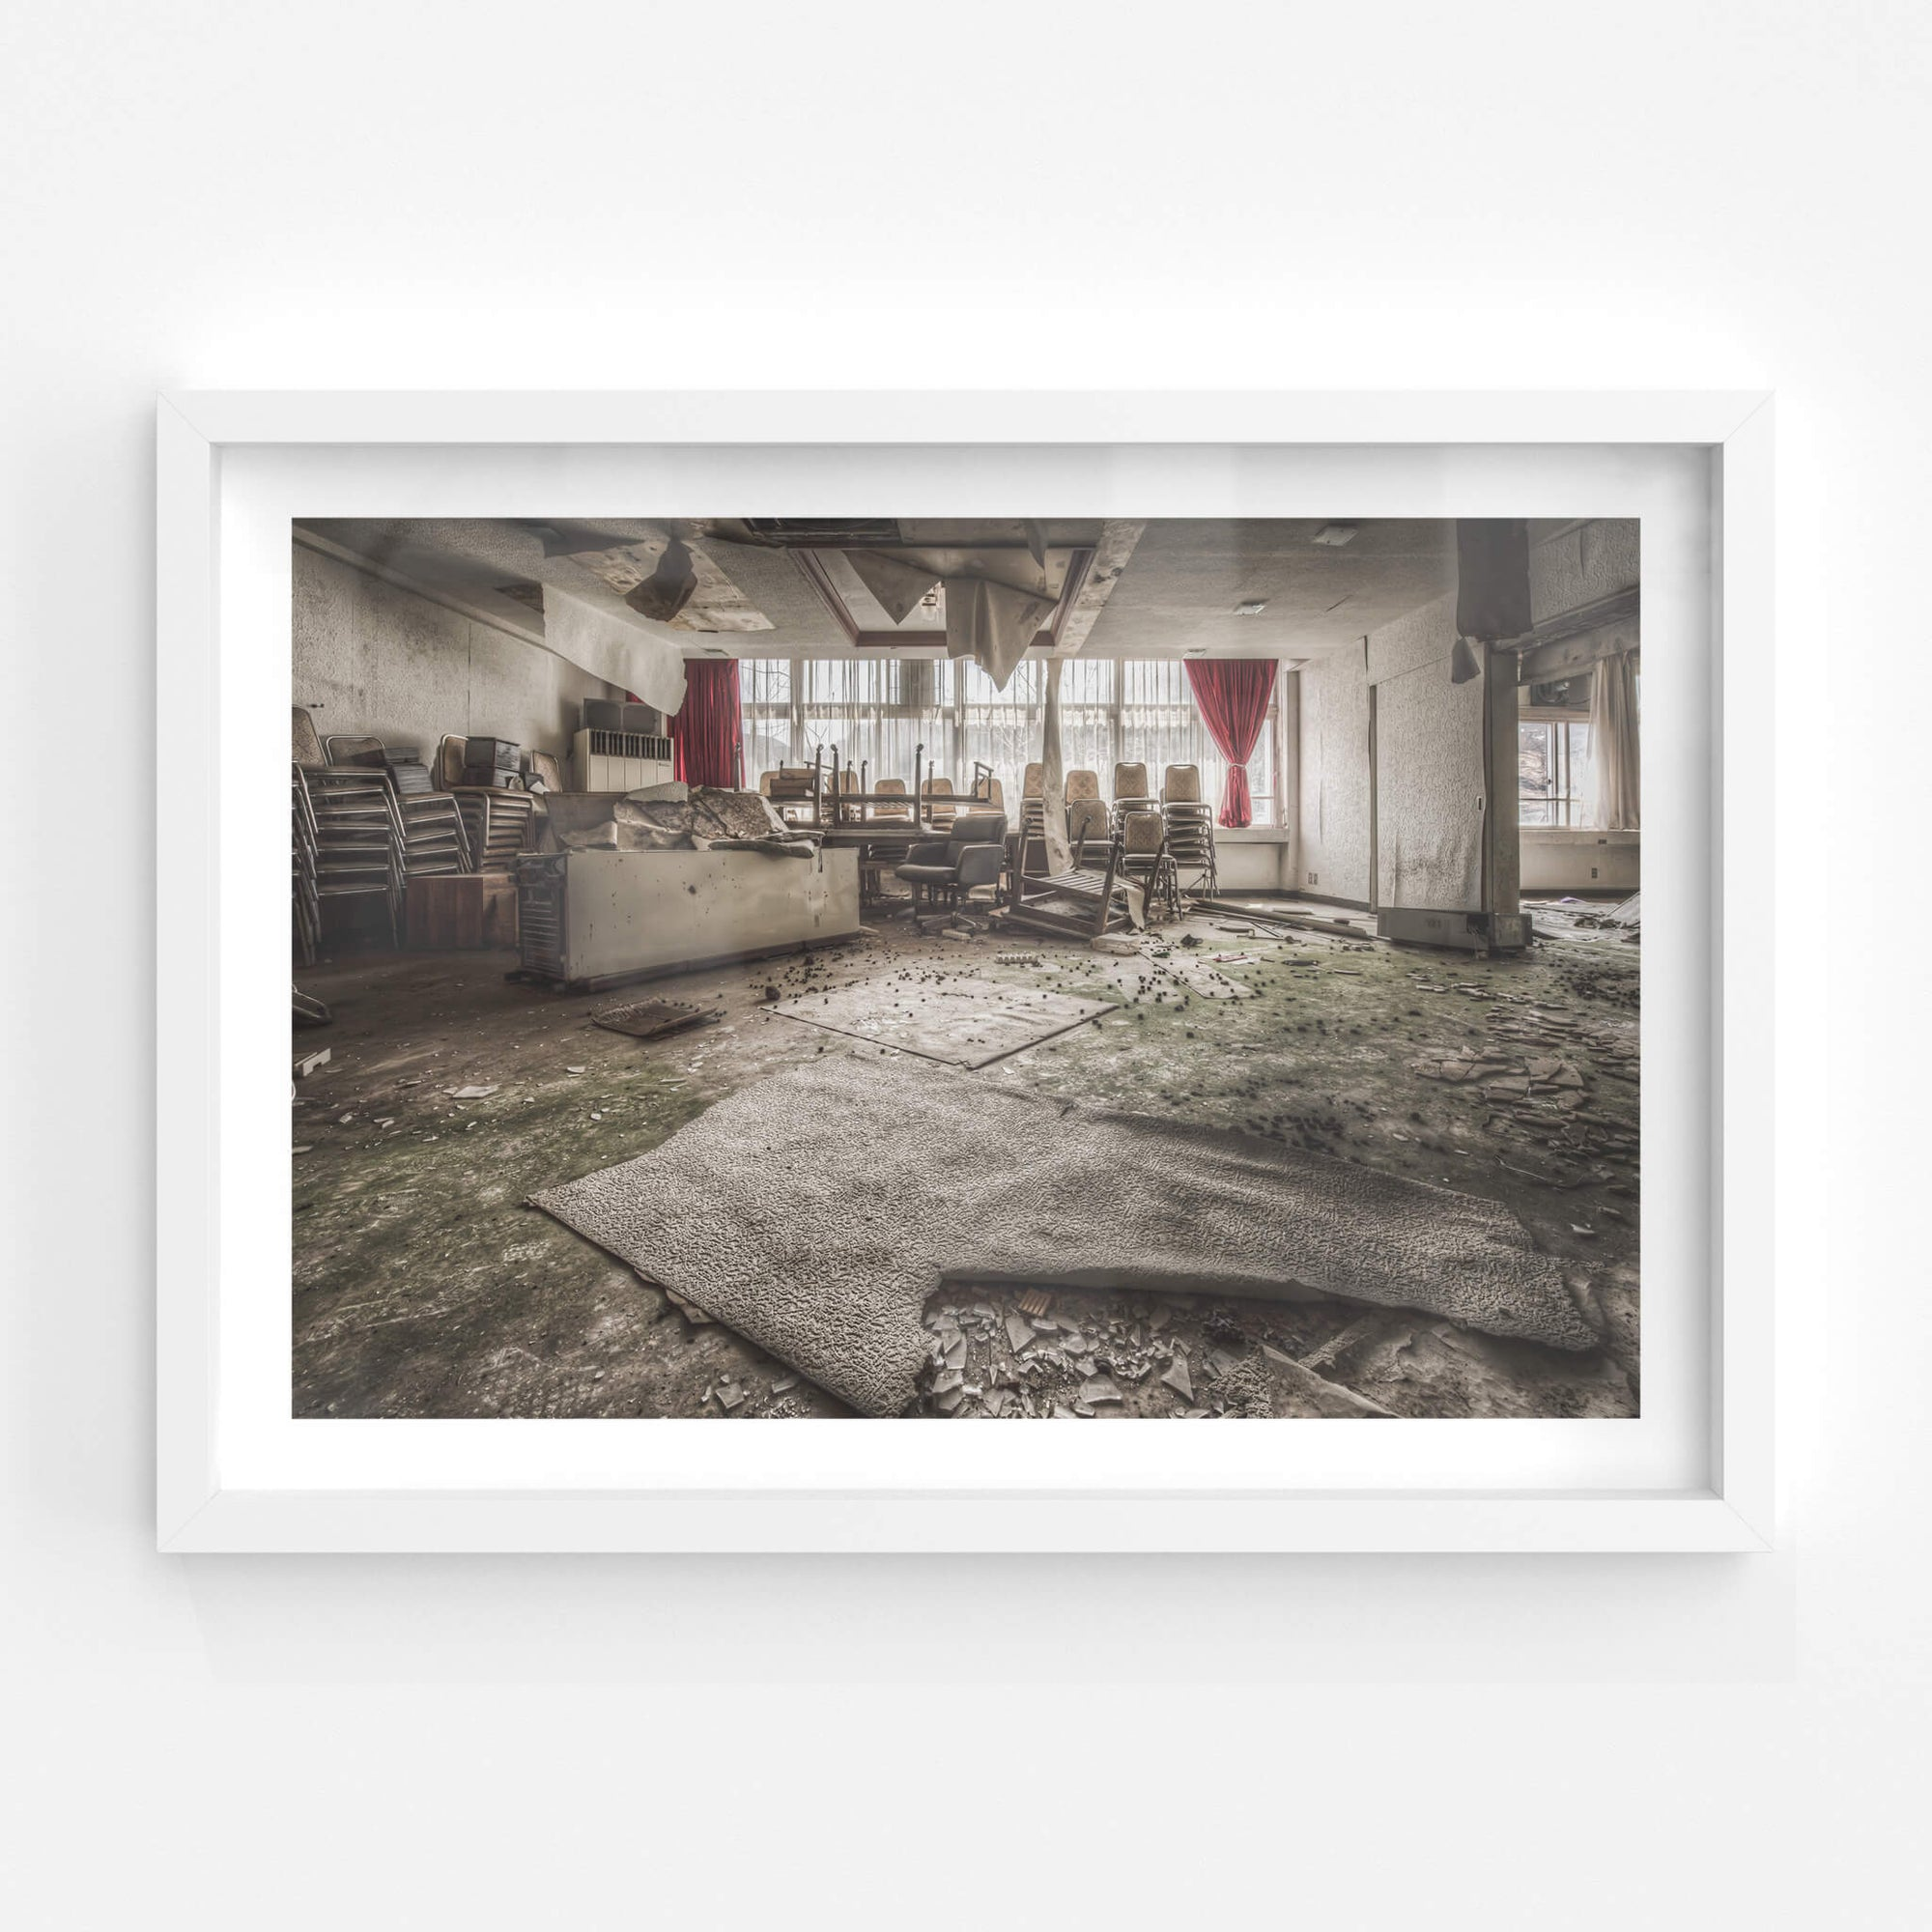 Chair Storage Area | Family School Fureai Fine Art Print - Lost Collective Shop